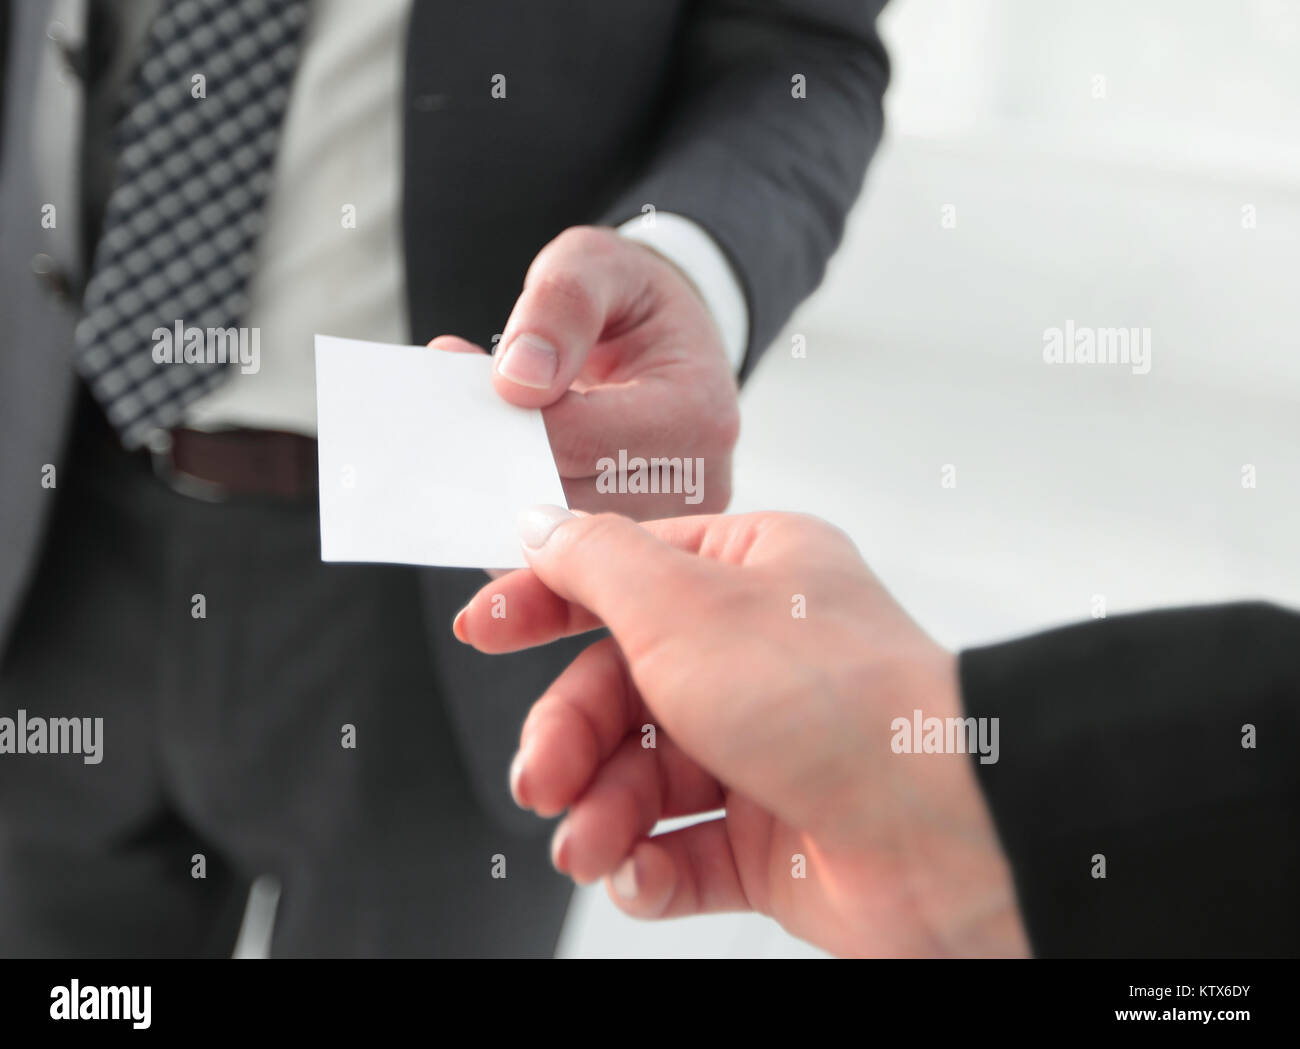 Offering Business Card Stock Photos & Offering Business Card Stock ...